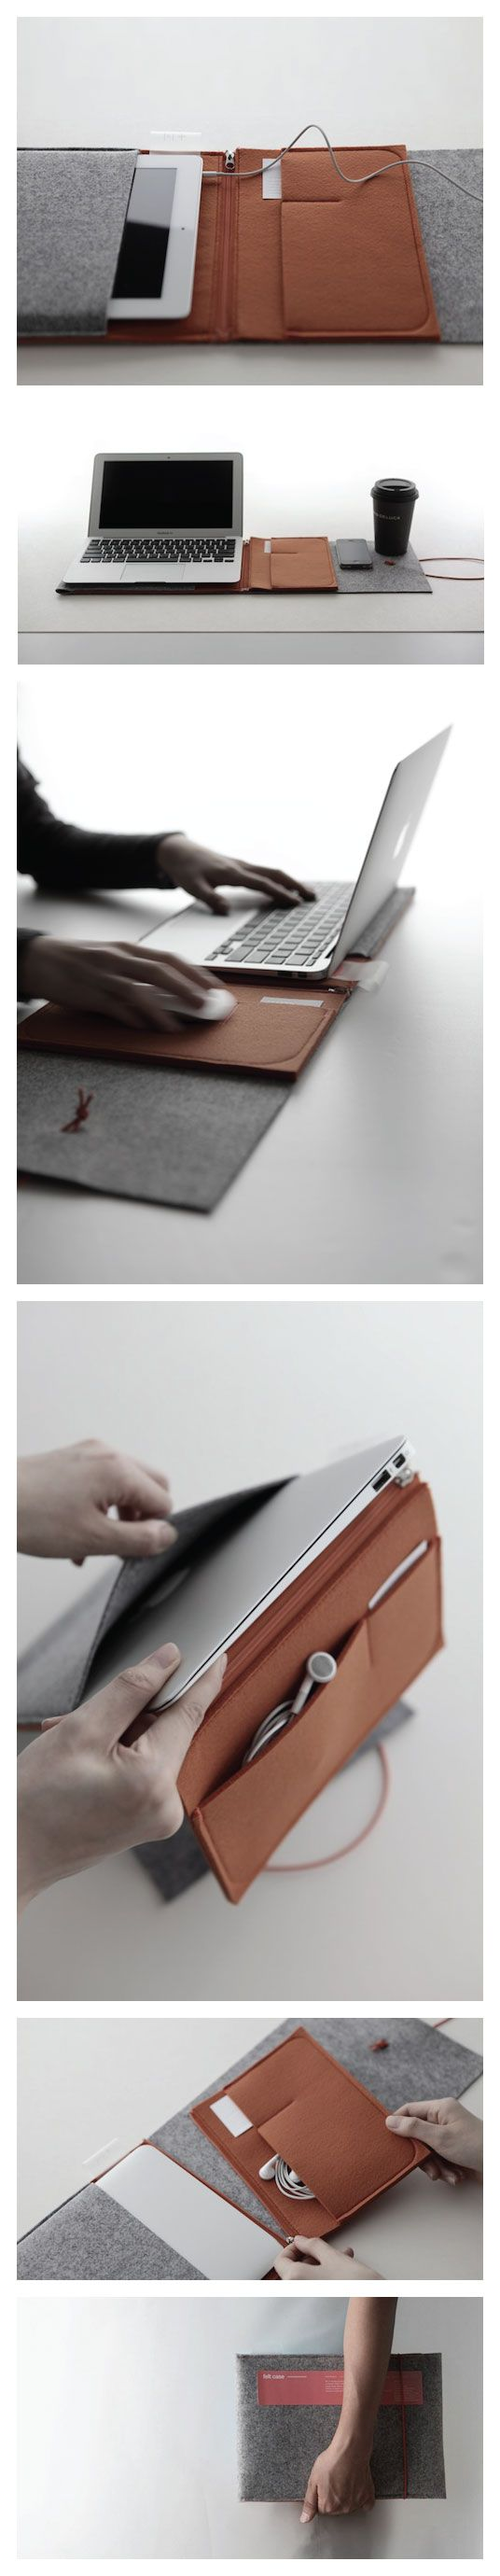 Beautiful & Creative Product Designs